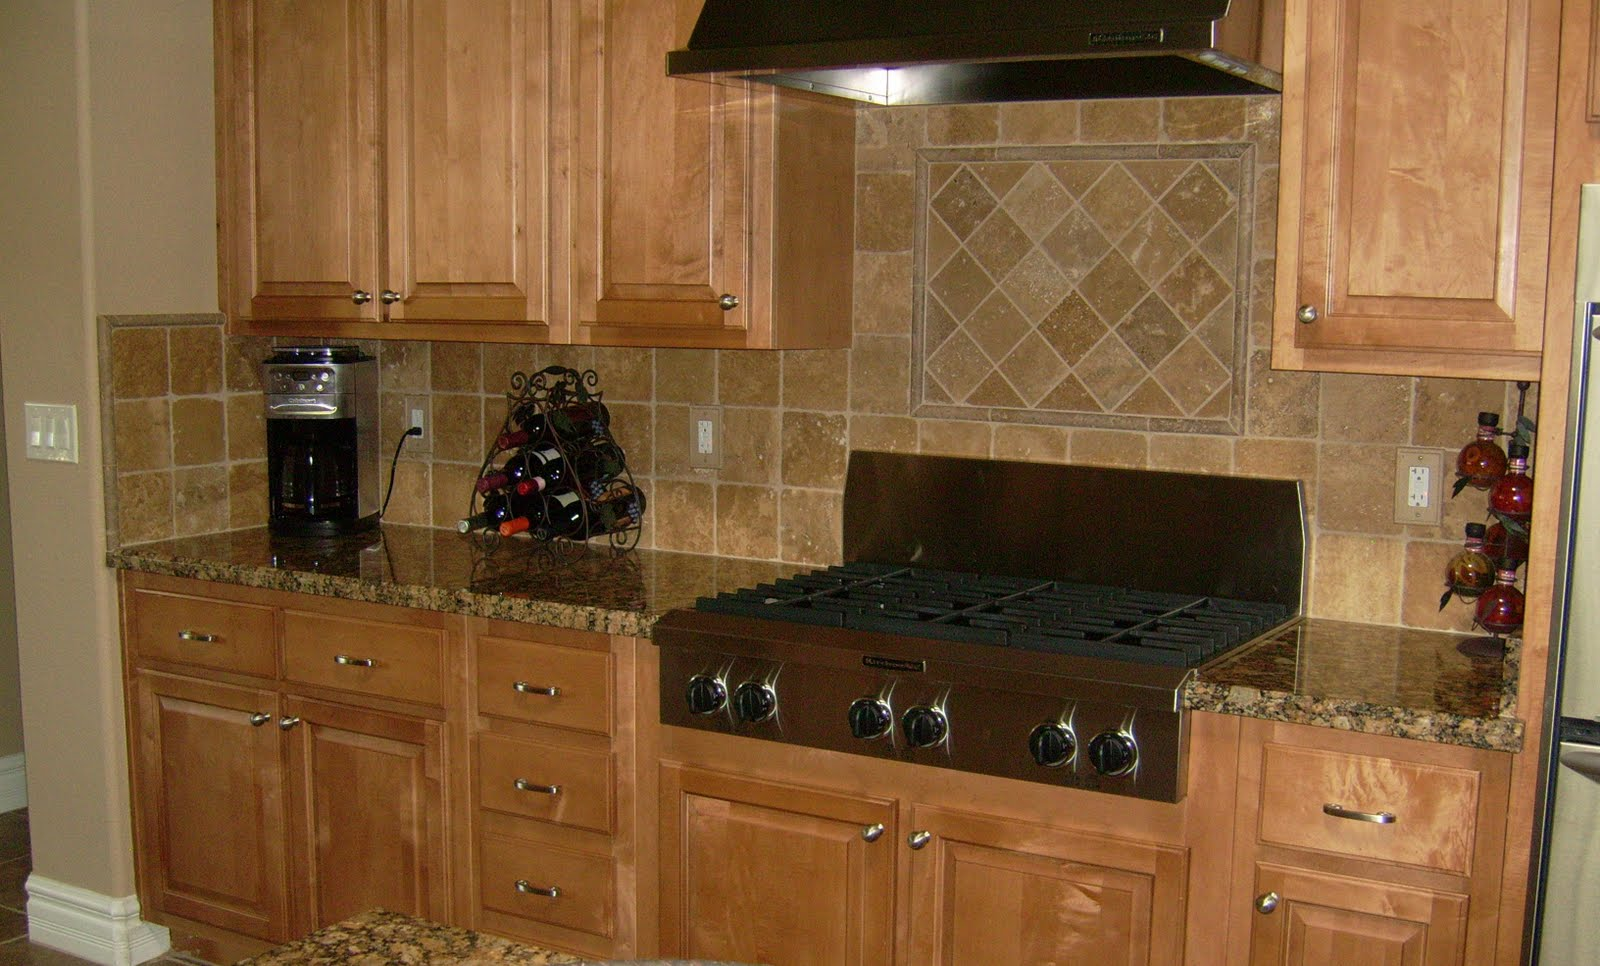 kitchen cabinets ideas for small kitchen on Pictures Kitchen Backsplash Ideas 6x6 Tumbled Stone Kitchen Backsplash ...